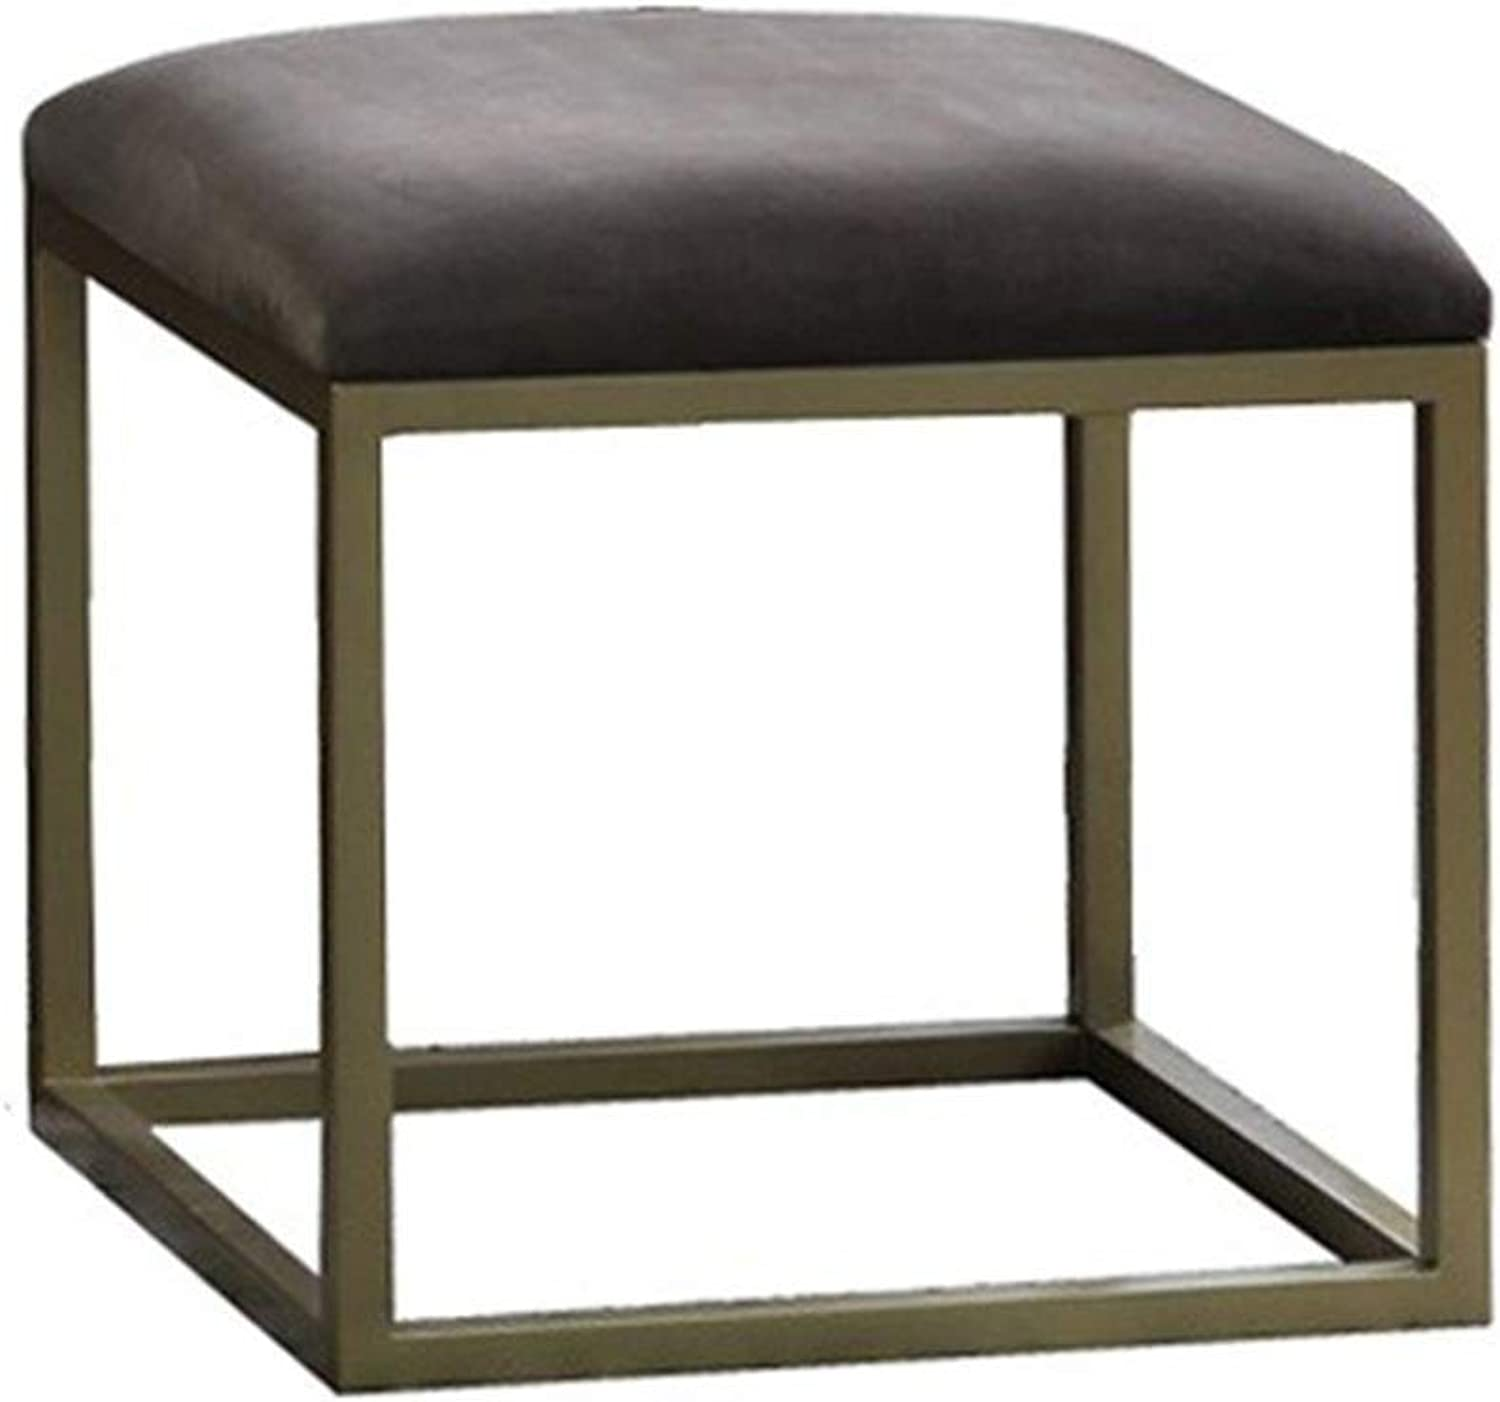 Footstool Simple Metal Multifunction Household Sofa Stool Adult Low Bench Clothing Store Change shoes Bench GMING (color   Brown, Size   32x32x35cm)